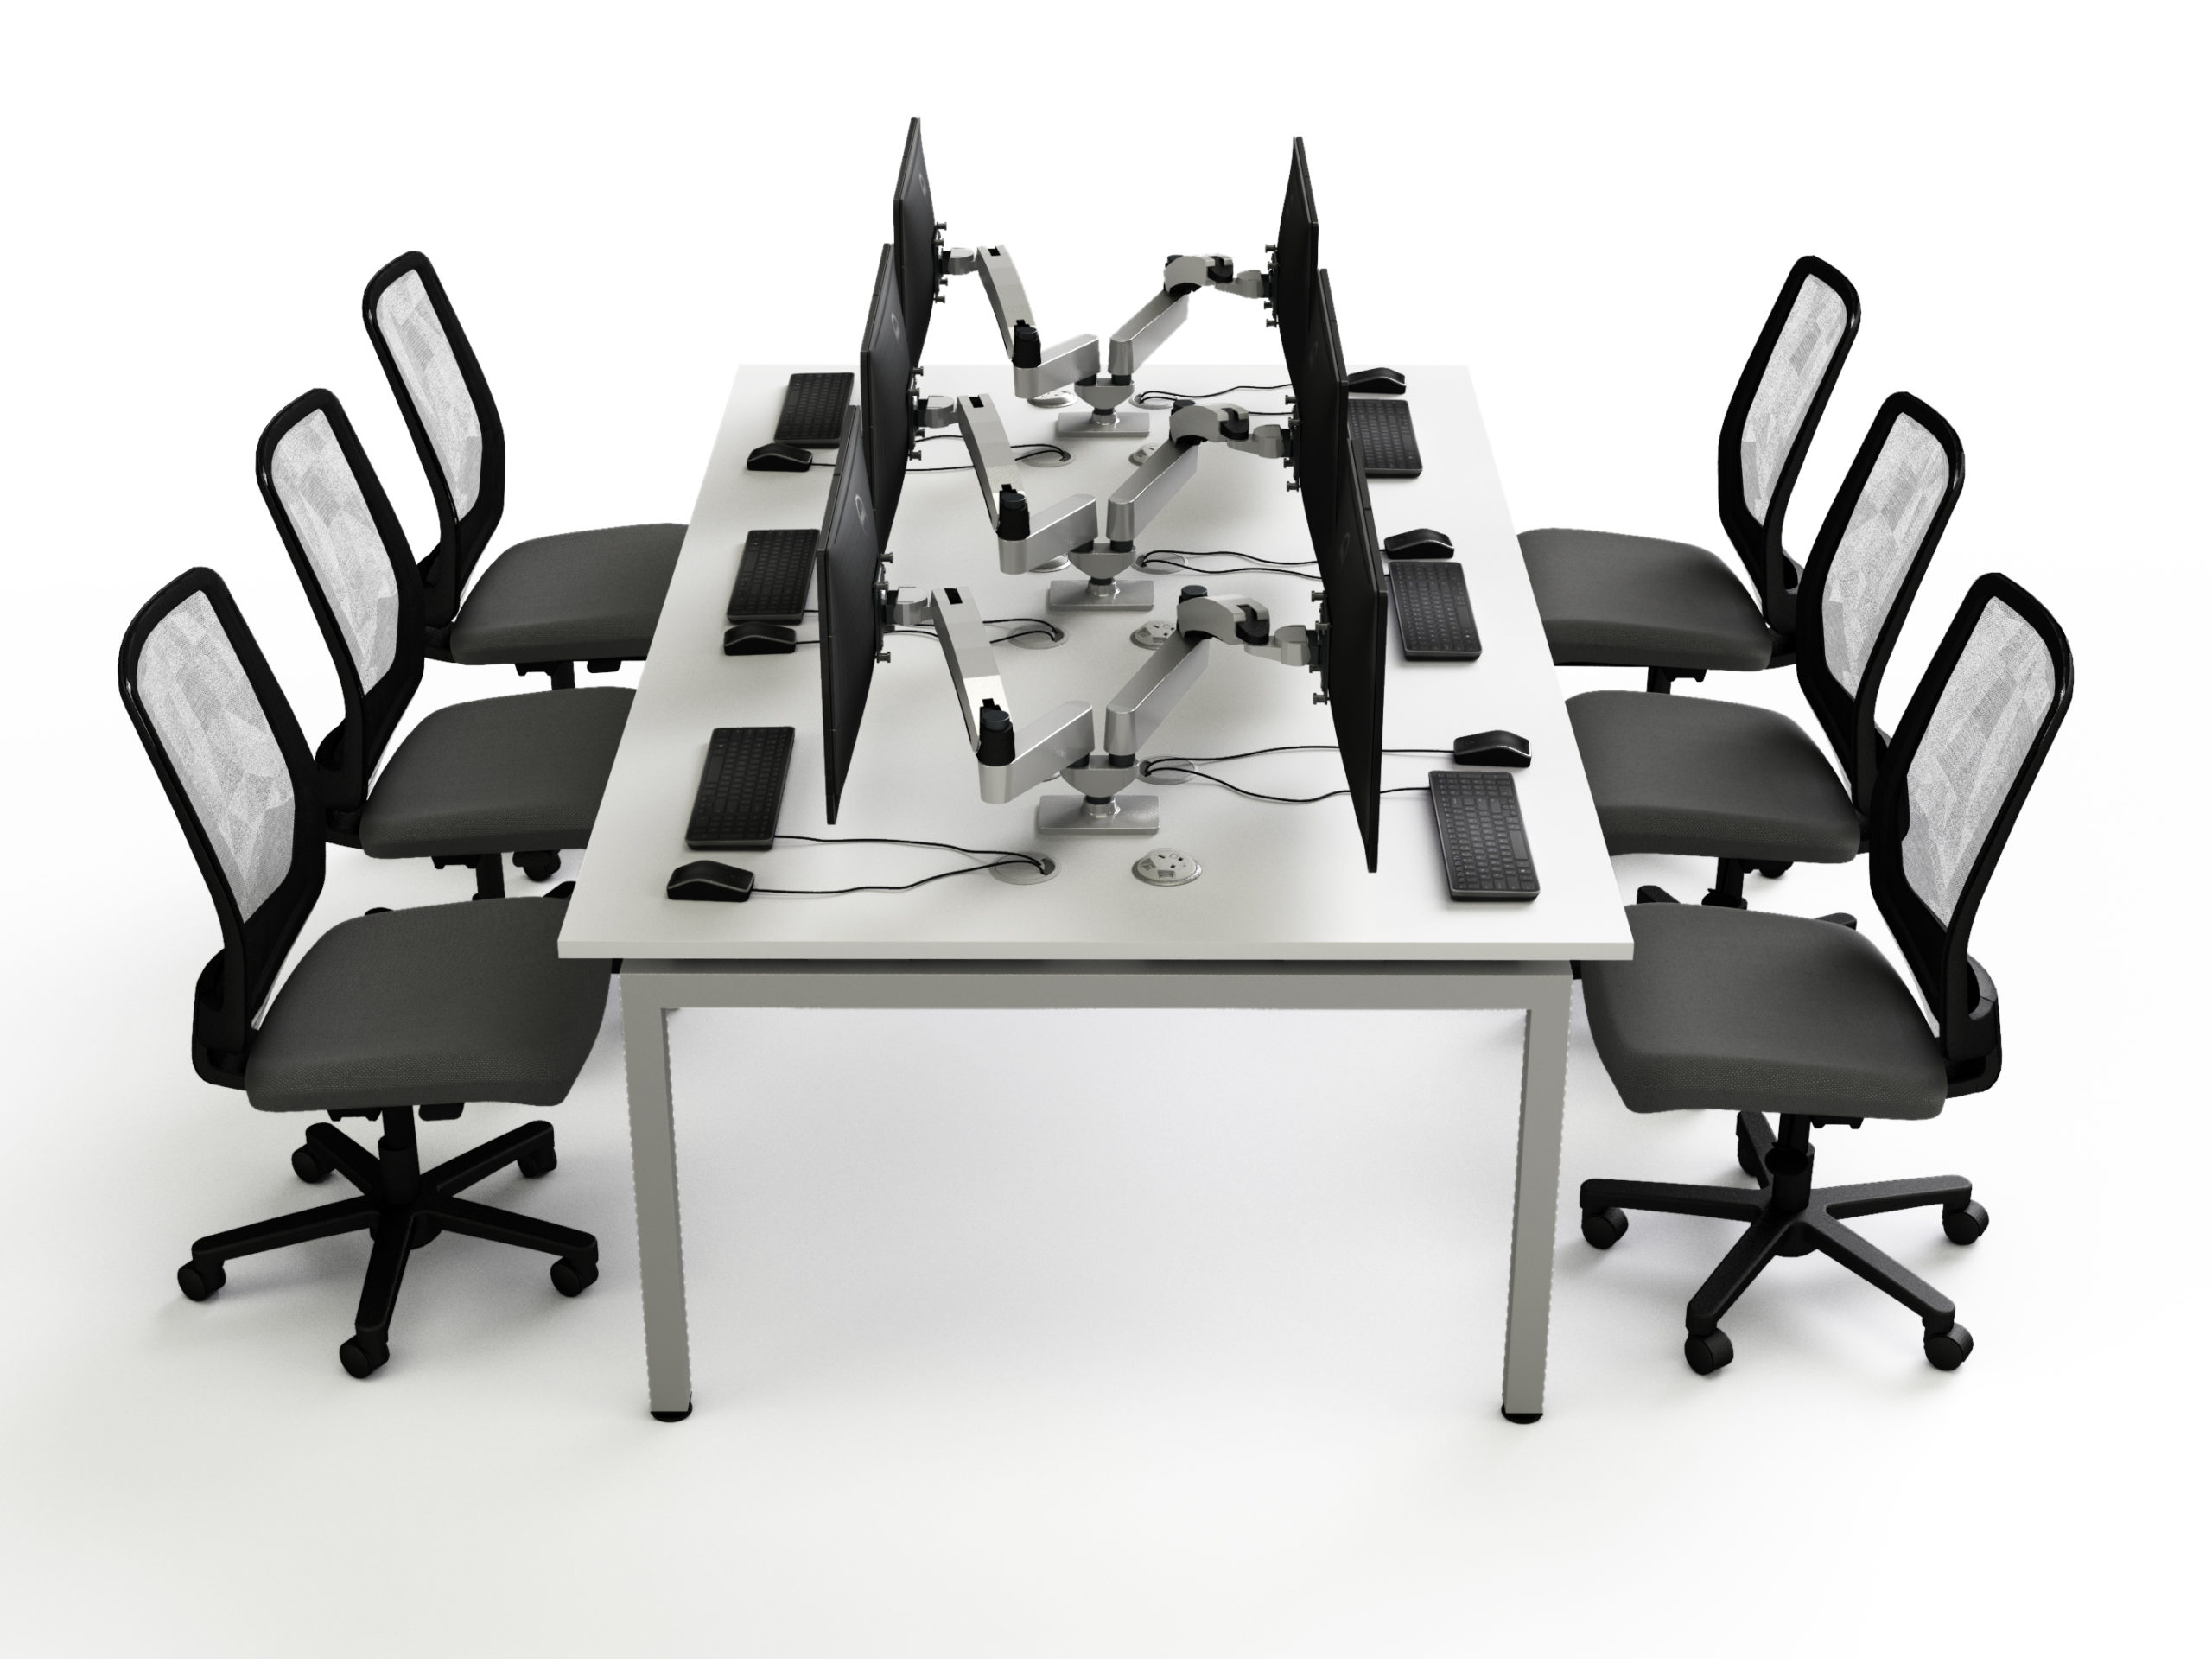 t03 benching work tables